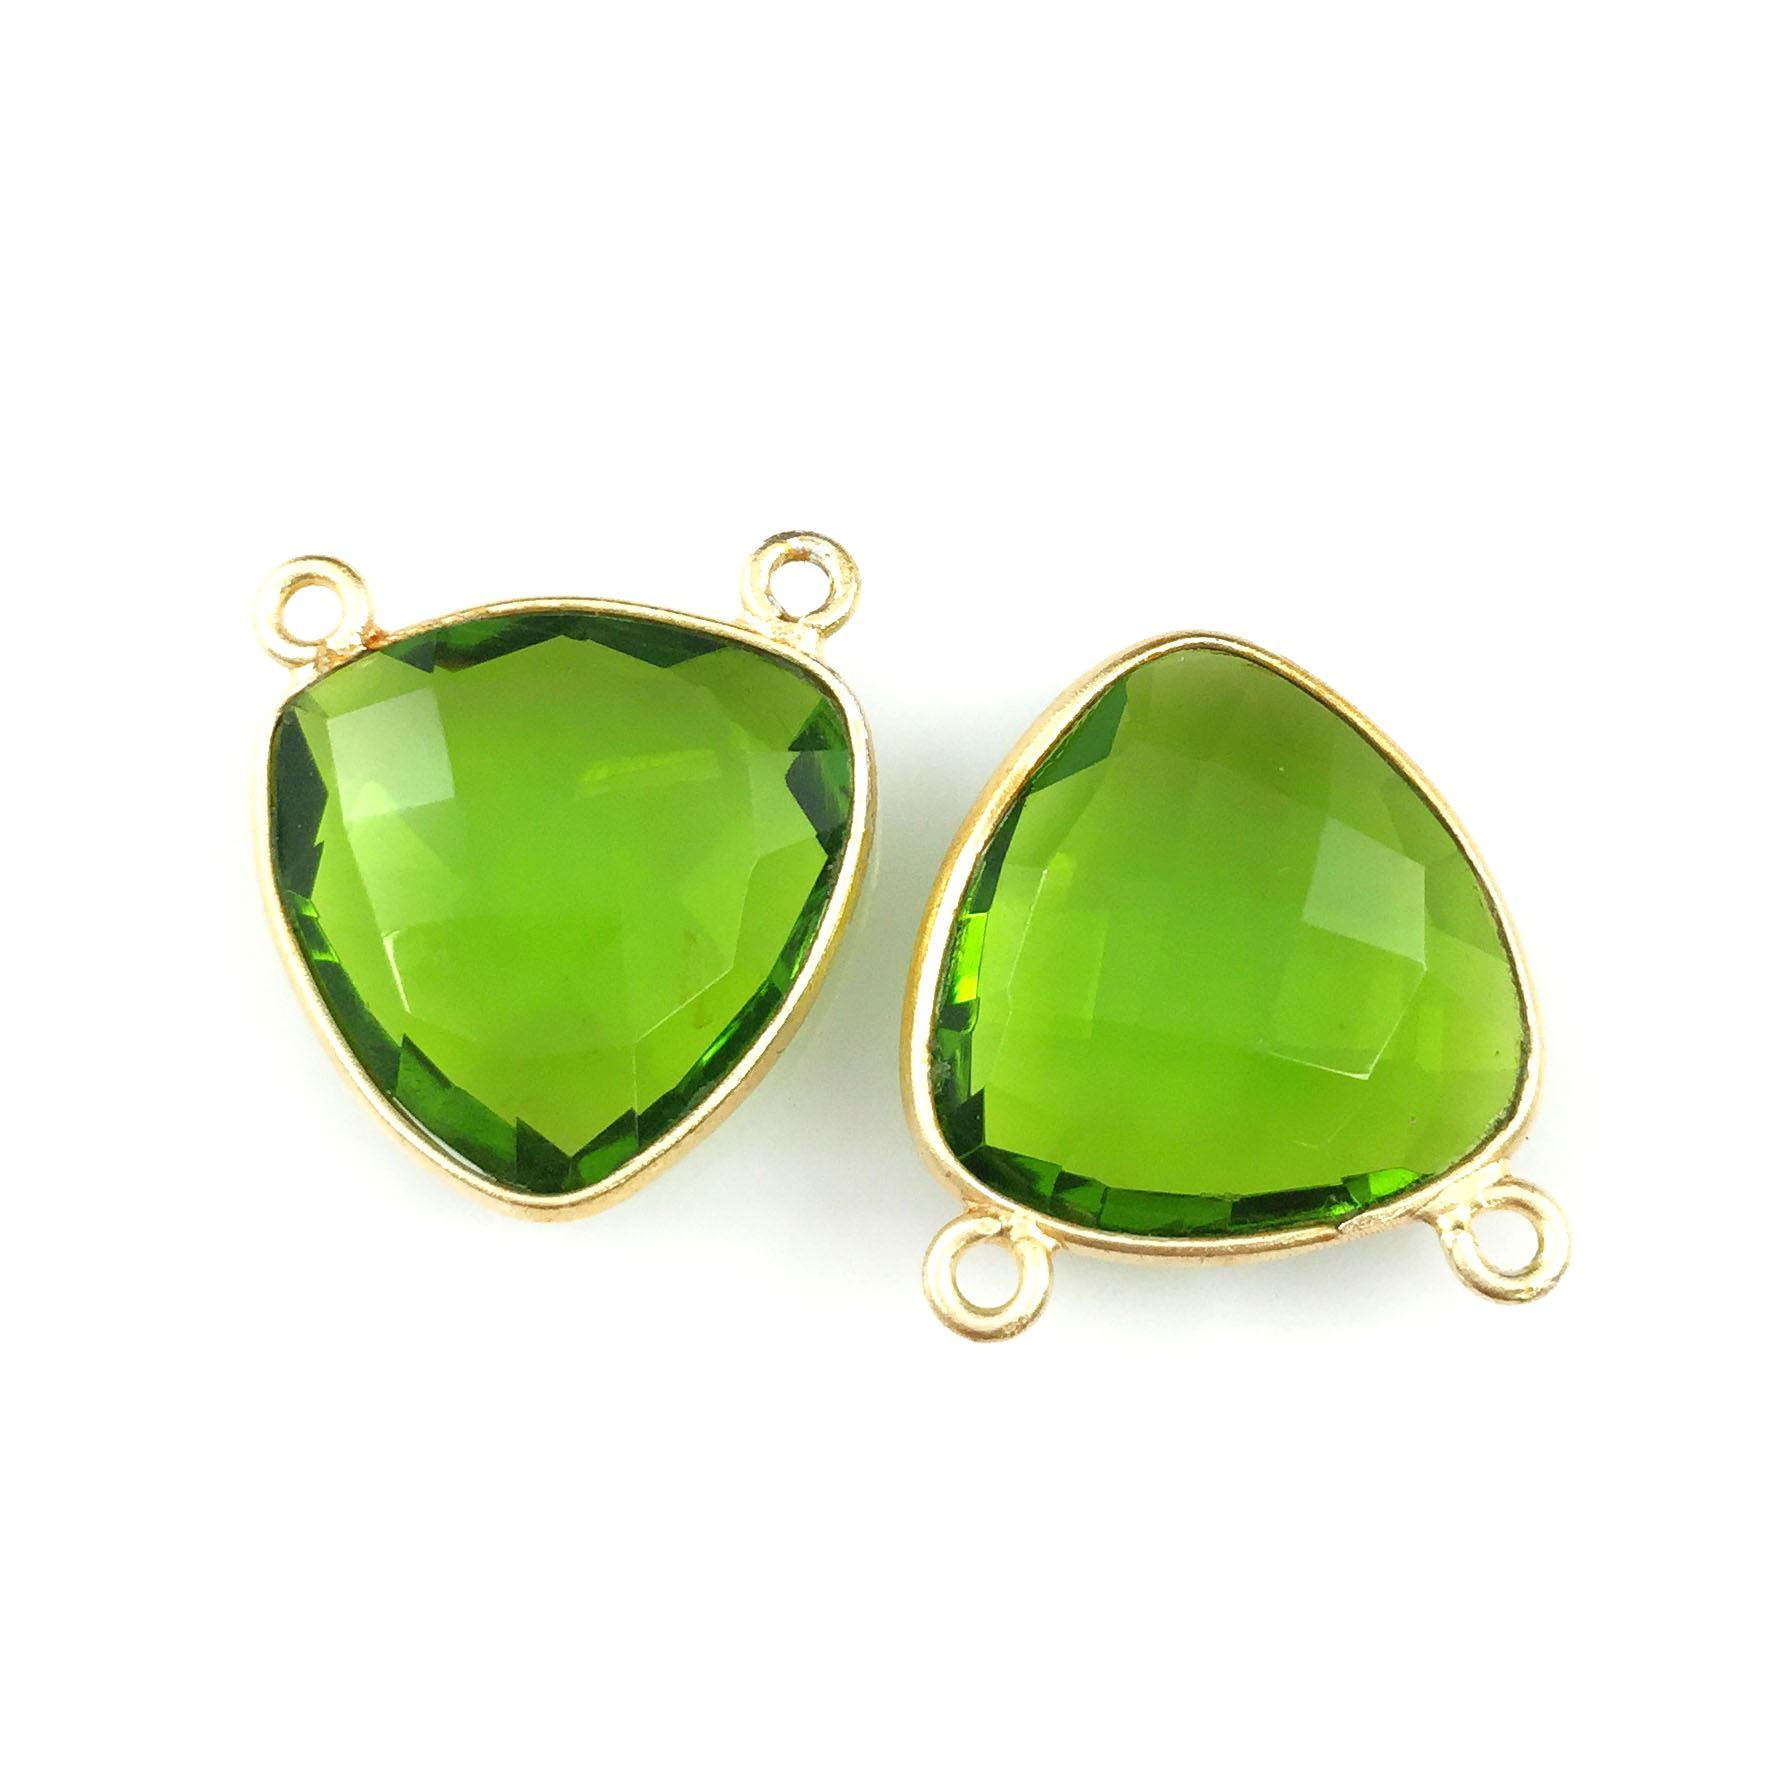 Bezel Gemstone Connector Pendant - Peridot Quartz - Gold plated Sterling Silver - Small Trillion Shaped Faceted - 15mm - 1 piece